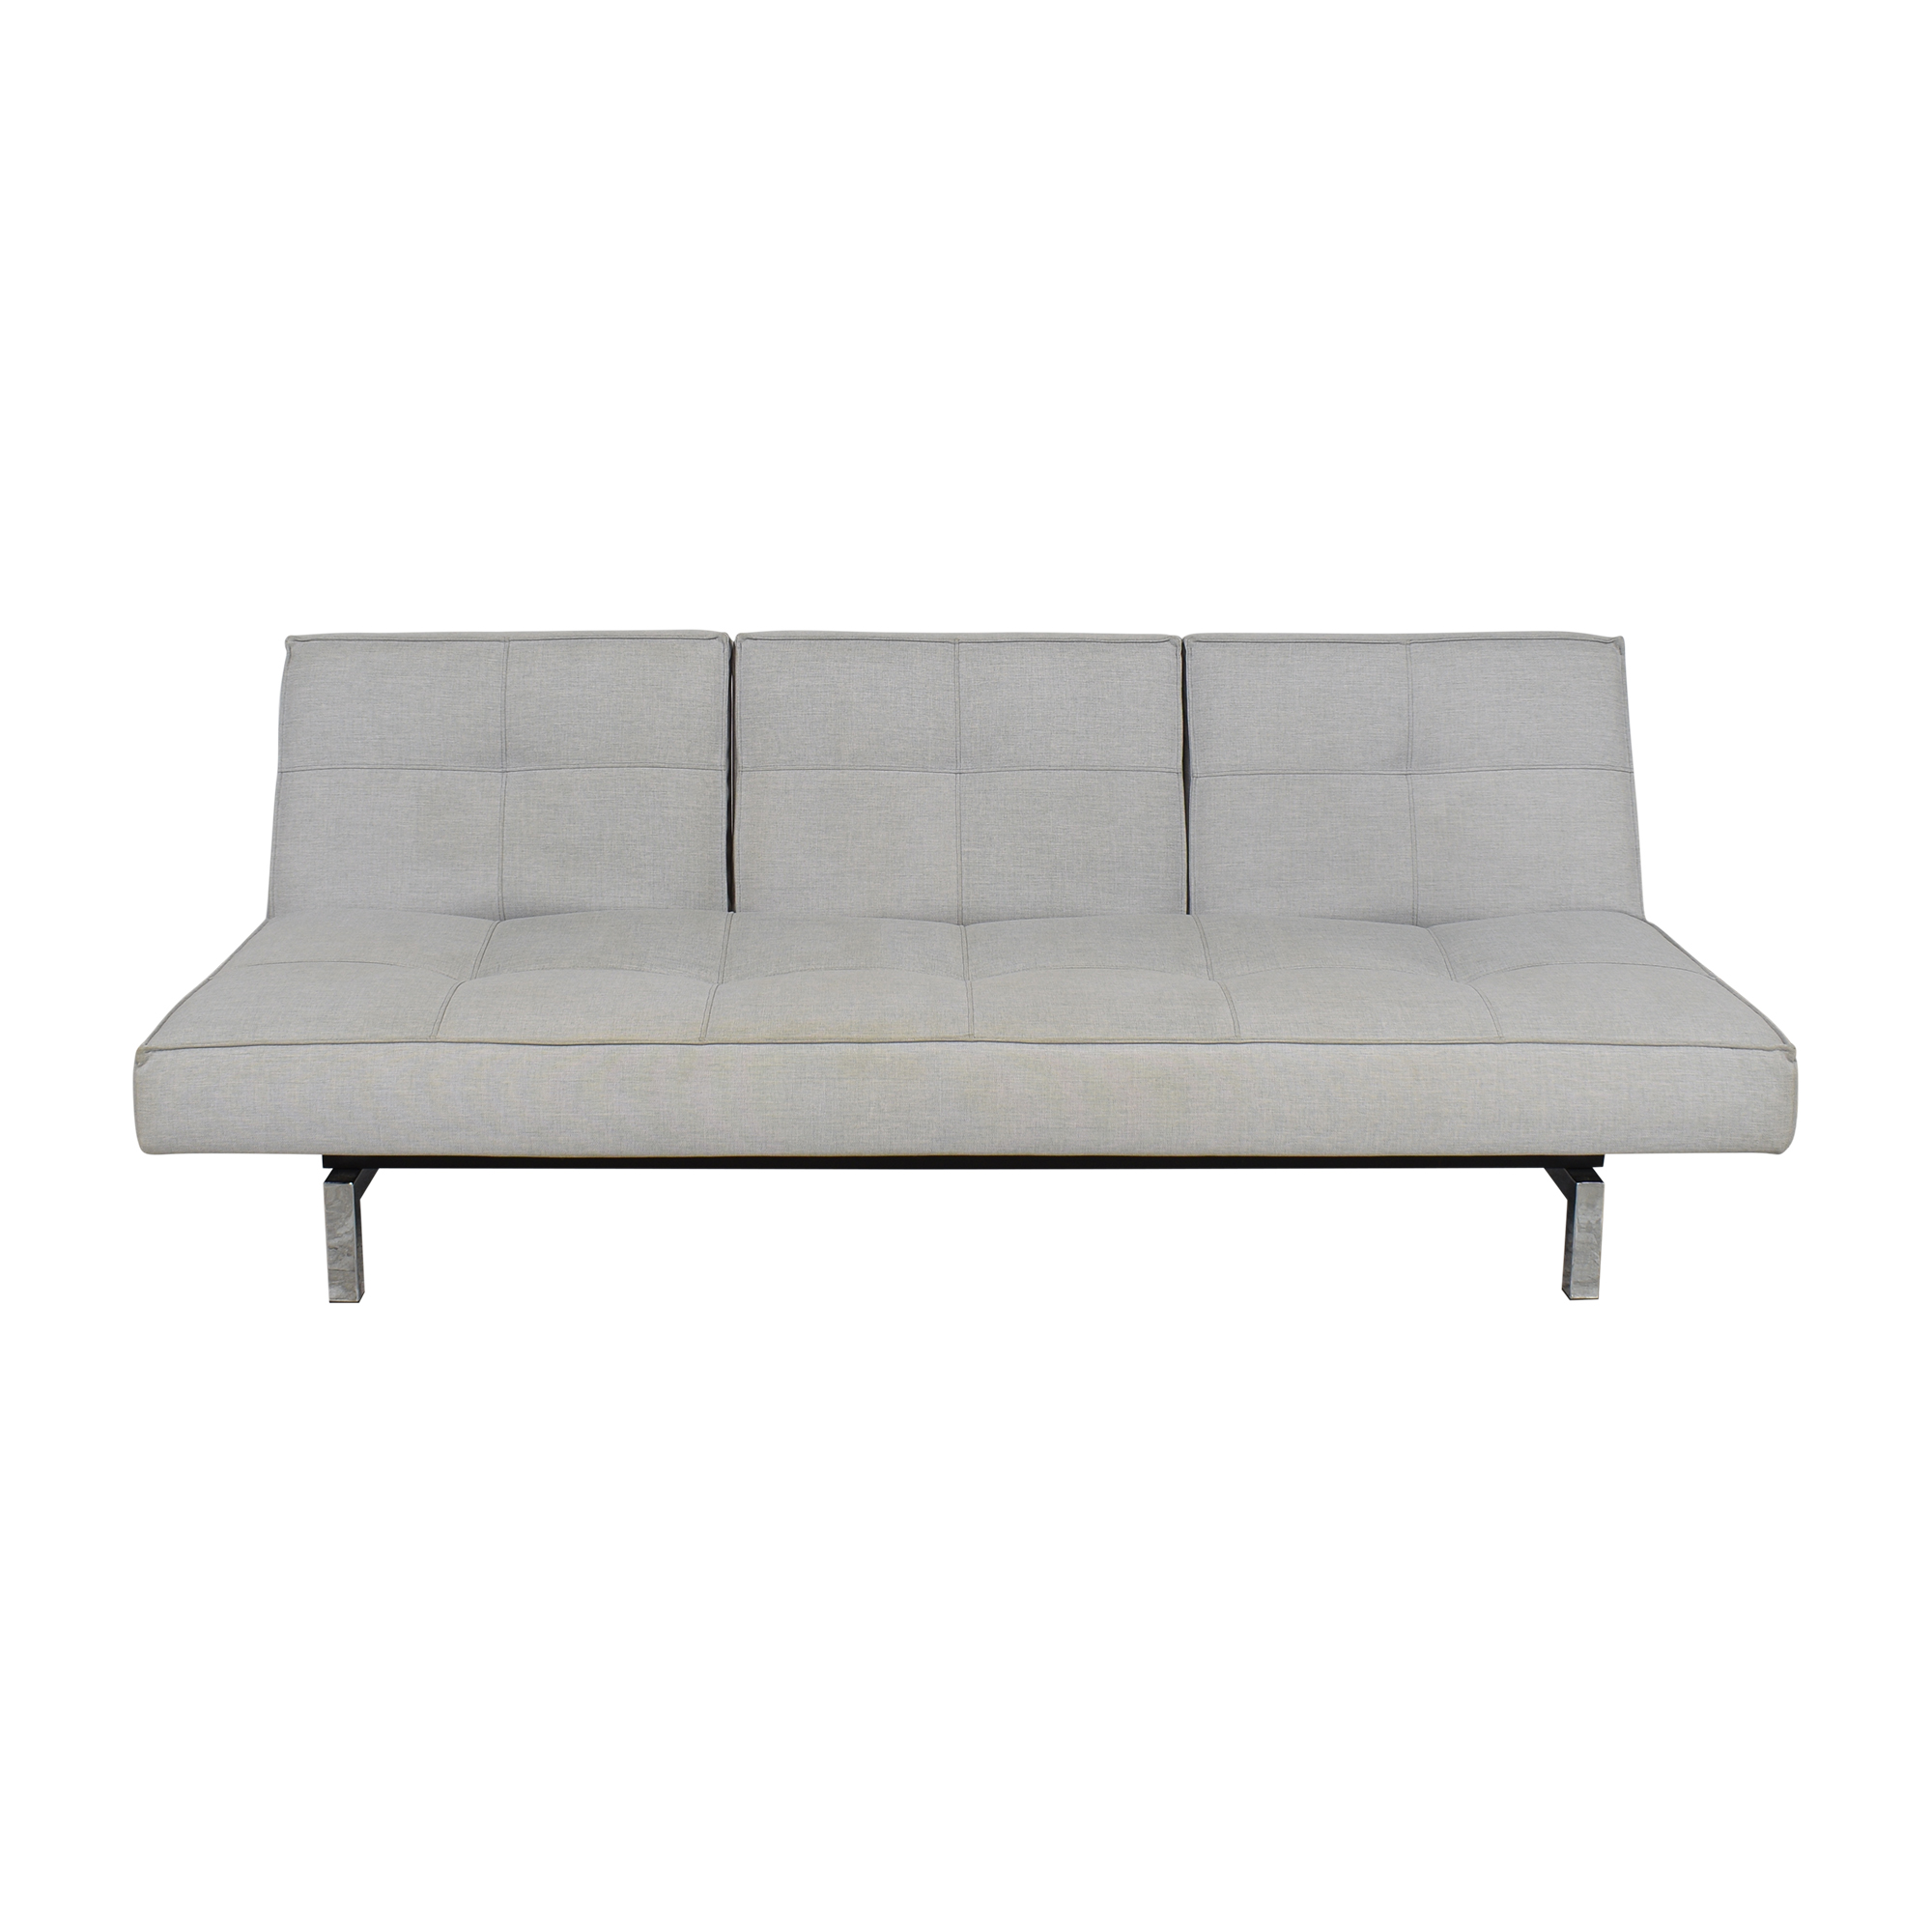 Innovation Living Innovation Living Convertible Tufted Sleeper Sofa coupon